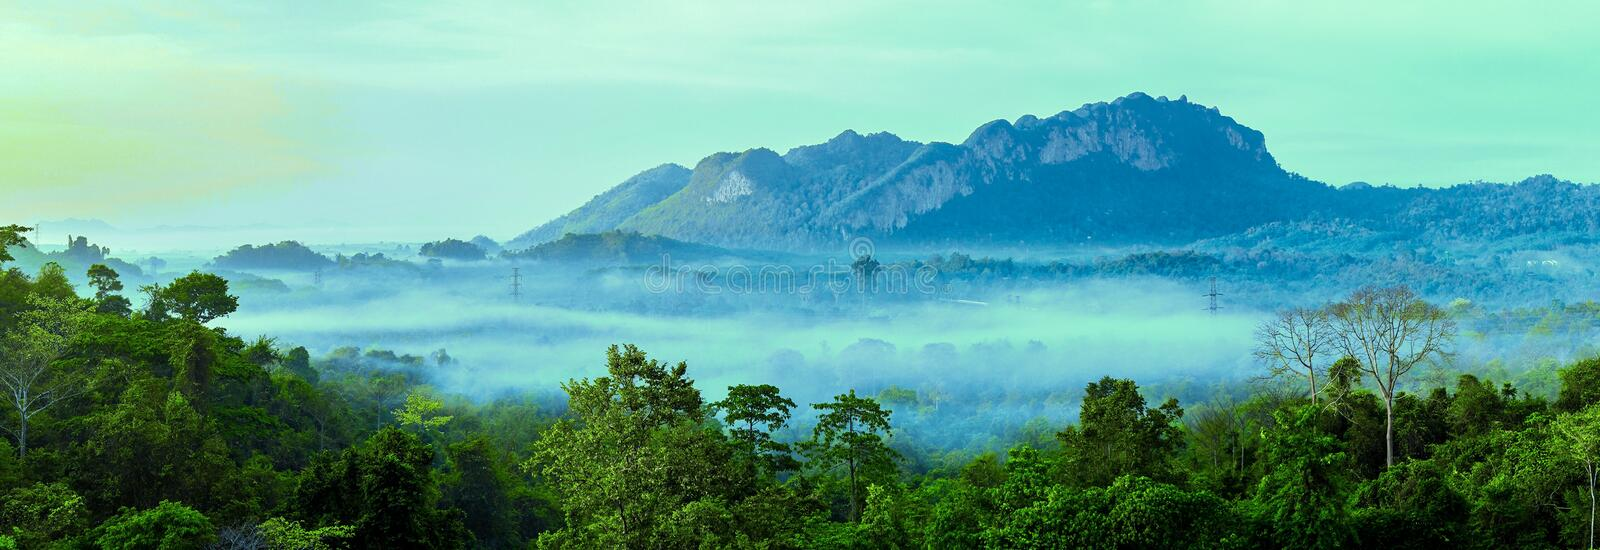 Beautiful Landscape of mountain layer in morning sun ray and winter fog at Doi Hua Mae Kham, Mae Salong Nai, Chiangrai, Thailand. Nature, background, forest royalty free stock photo